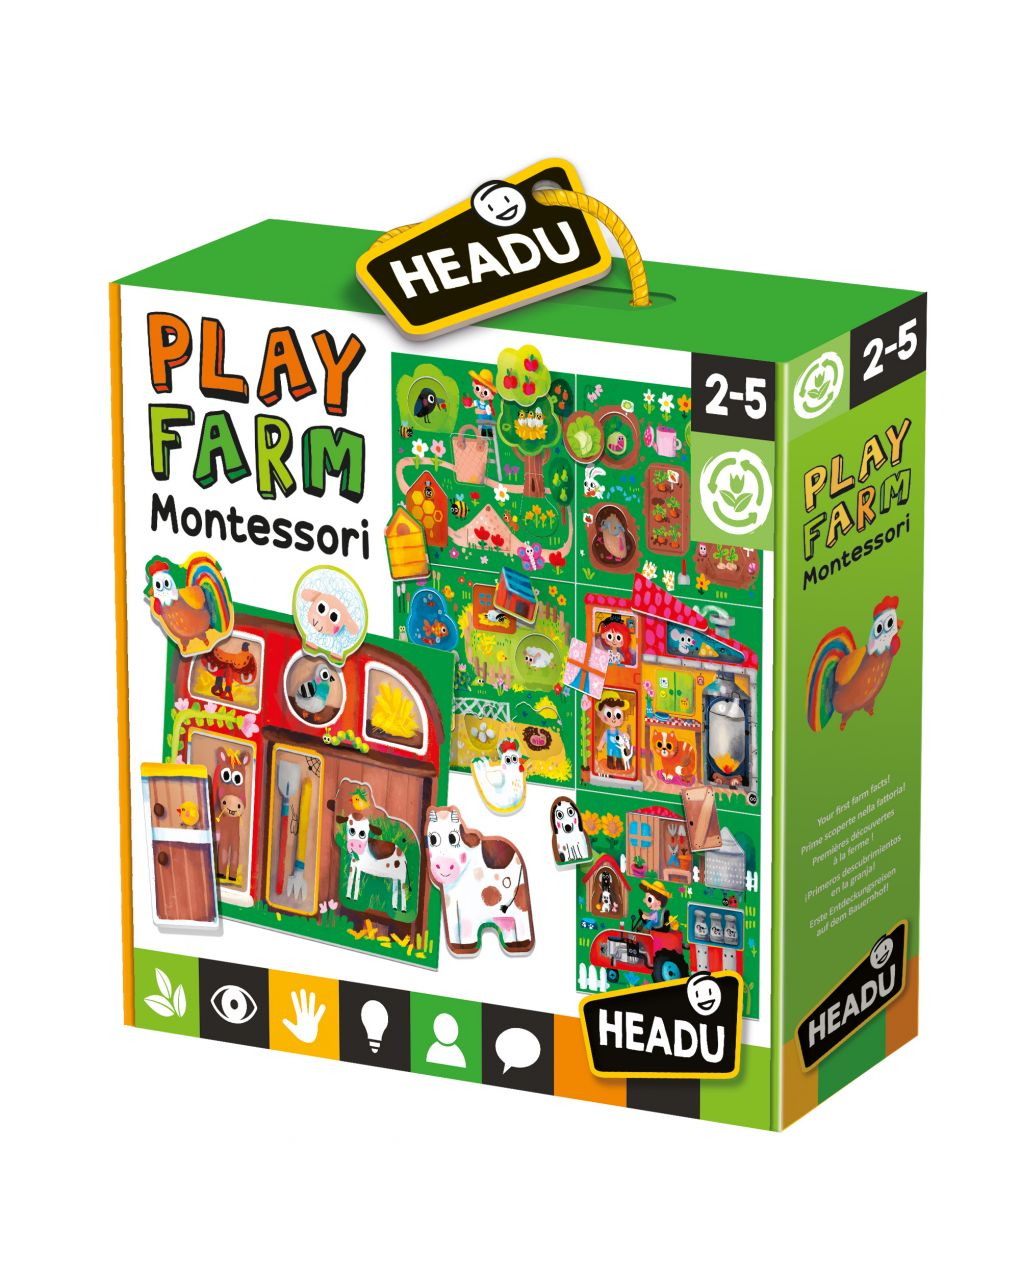 Headu - baby play farm montessori - Headu